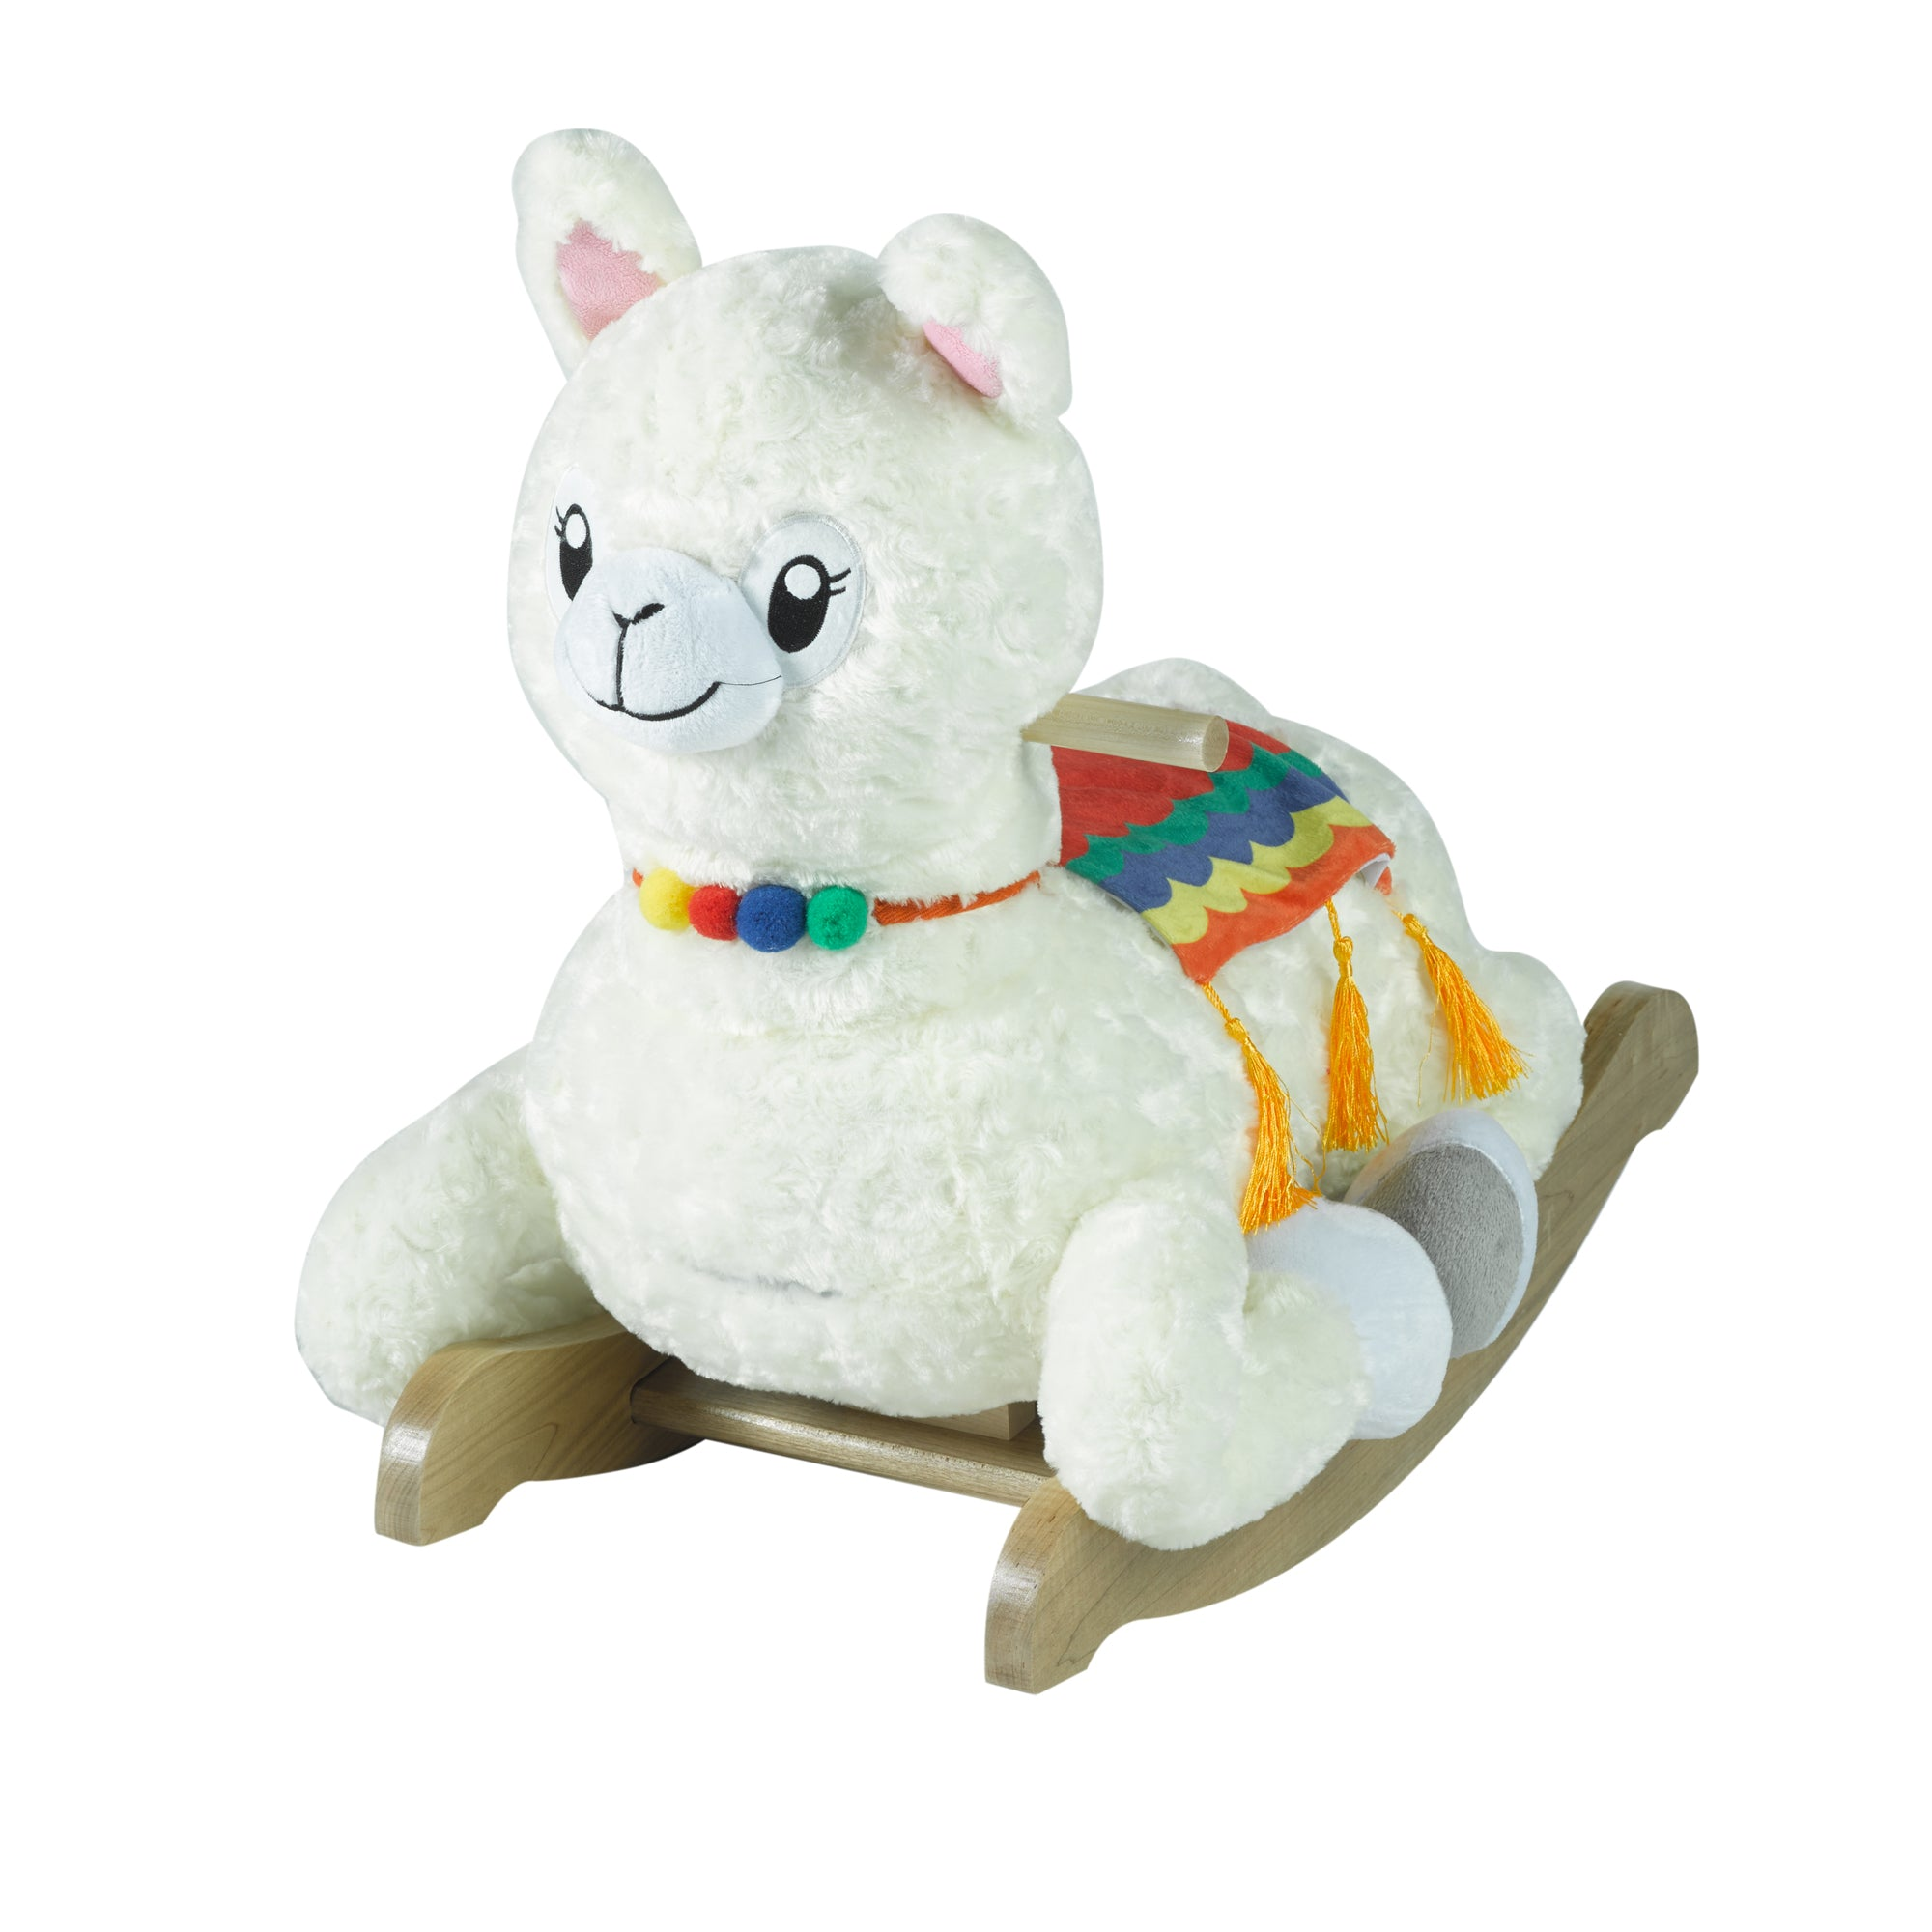 Dolly the Llama Classic rockAbye